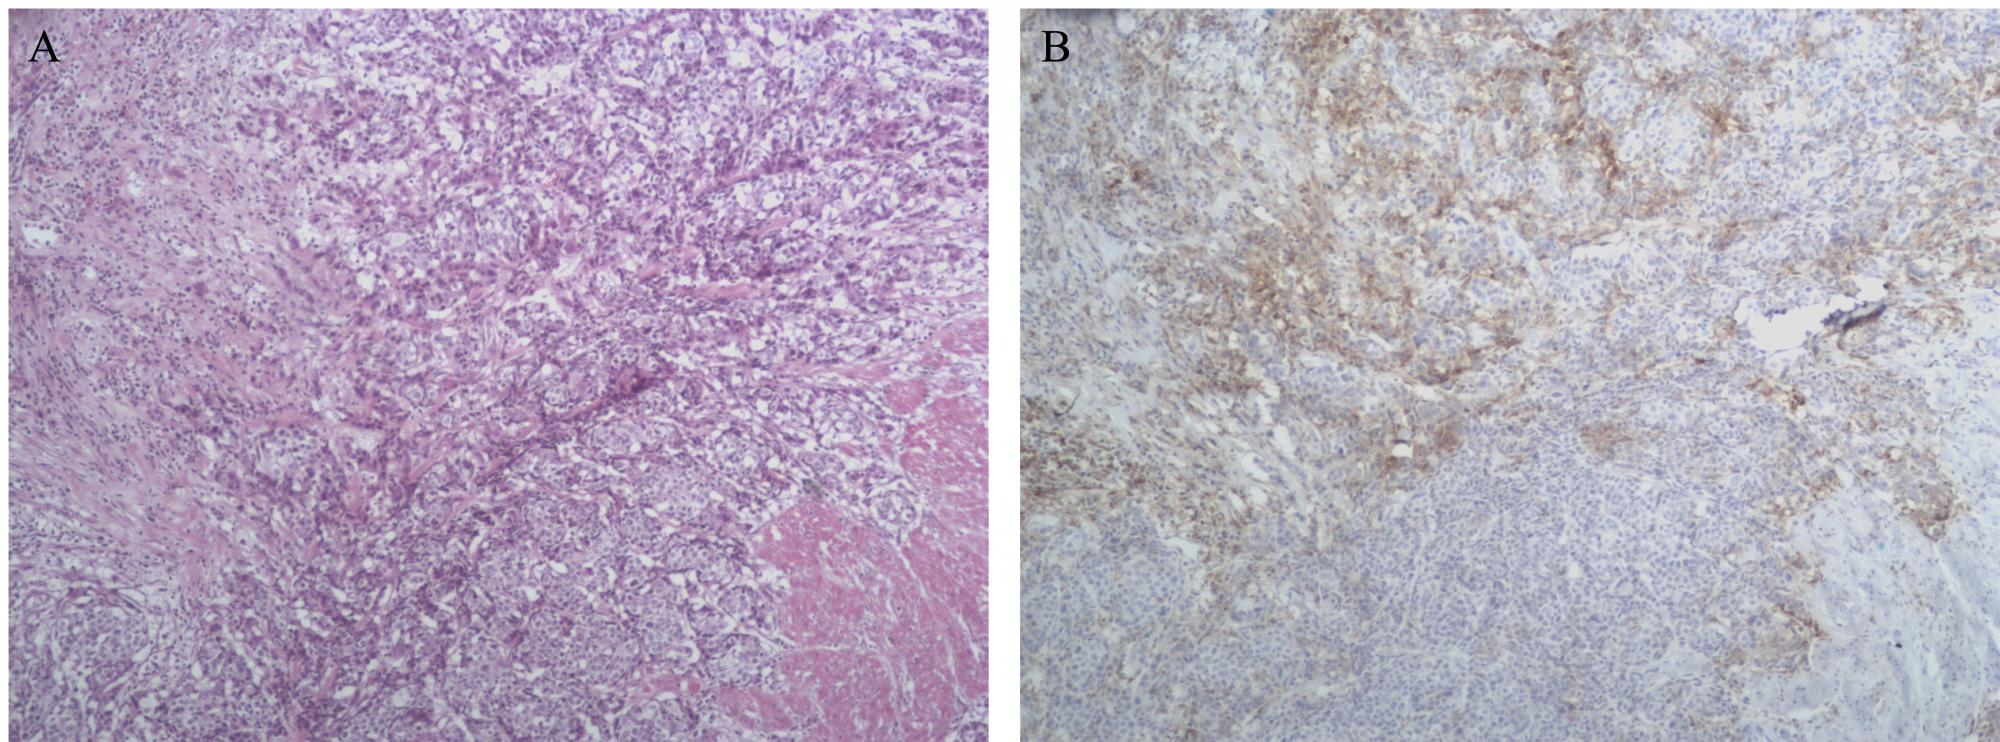 Fig 3. A. HE showed that the proportion of tumor cells in the microscope field is 40%. B. Immunohistochemistry(IHC) showed that PD-L1 percentage scoring of tumor cells and tumor-infiltrating immune cells was 2 (15-25%) and 2(5-10%), respectively